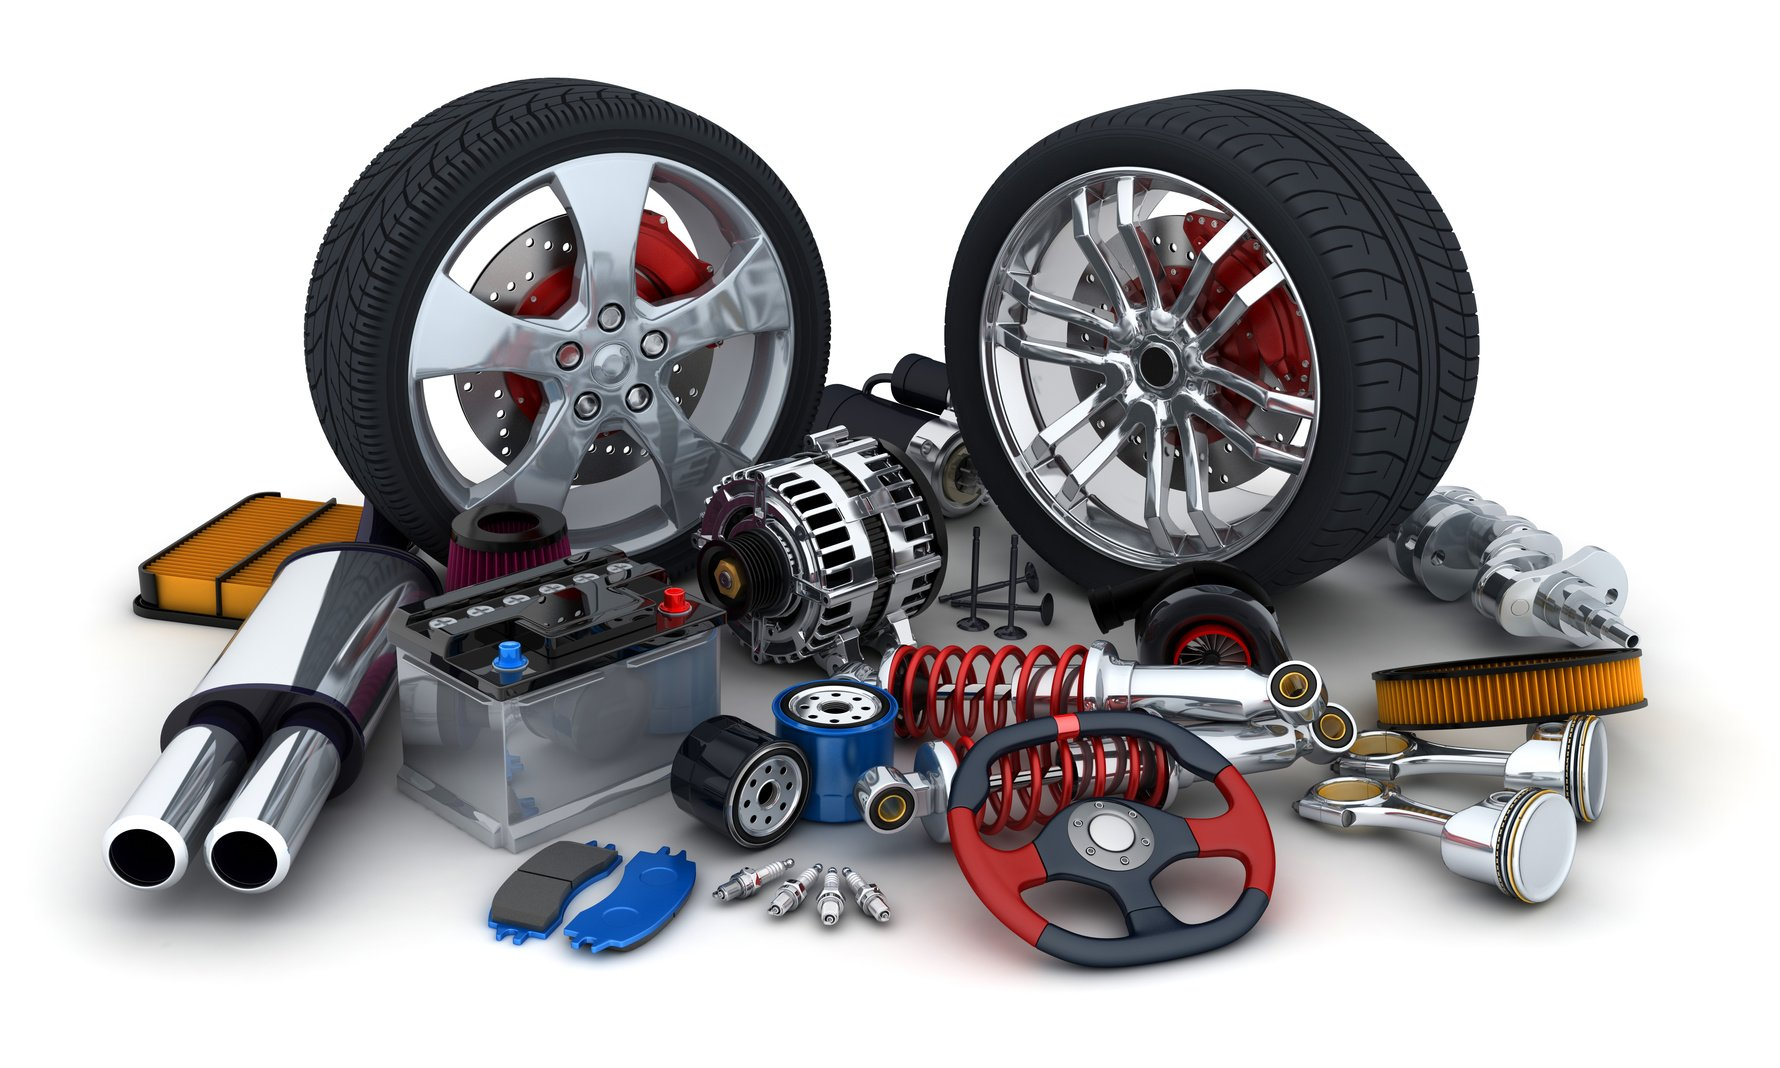 Car and Truck Accessories Catonsville | Auto Parts Retailer